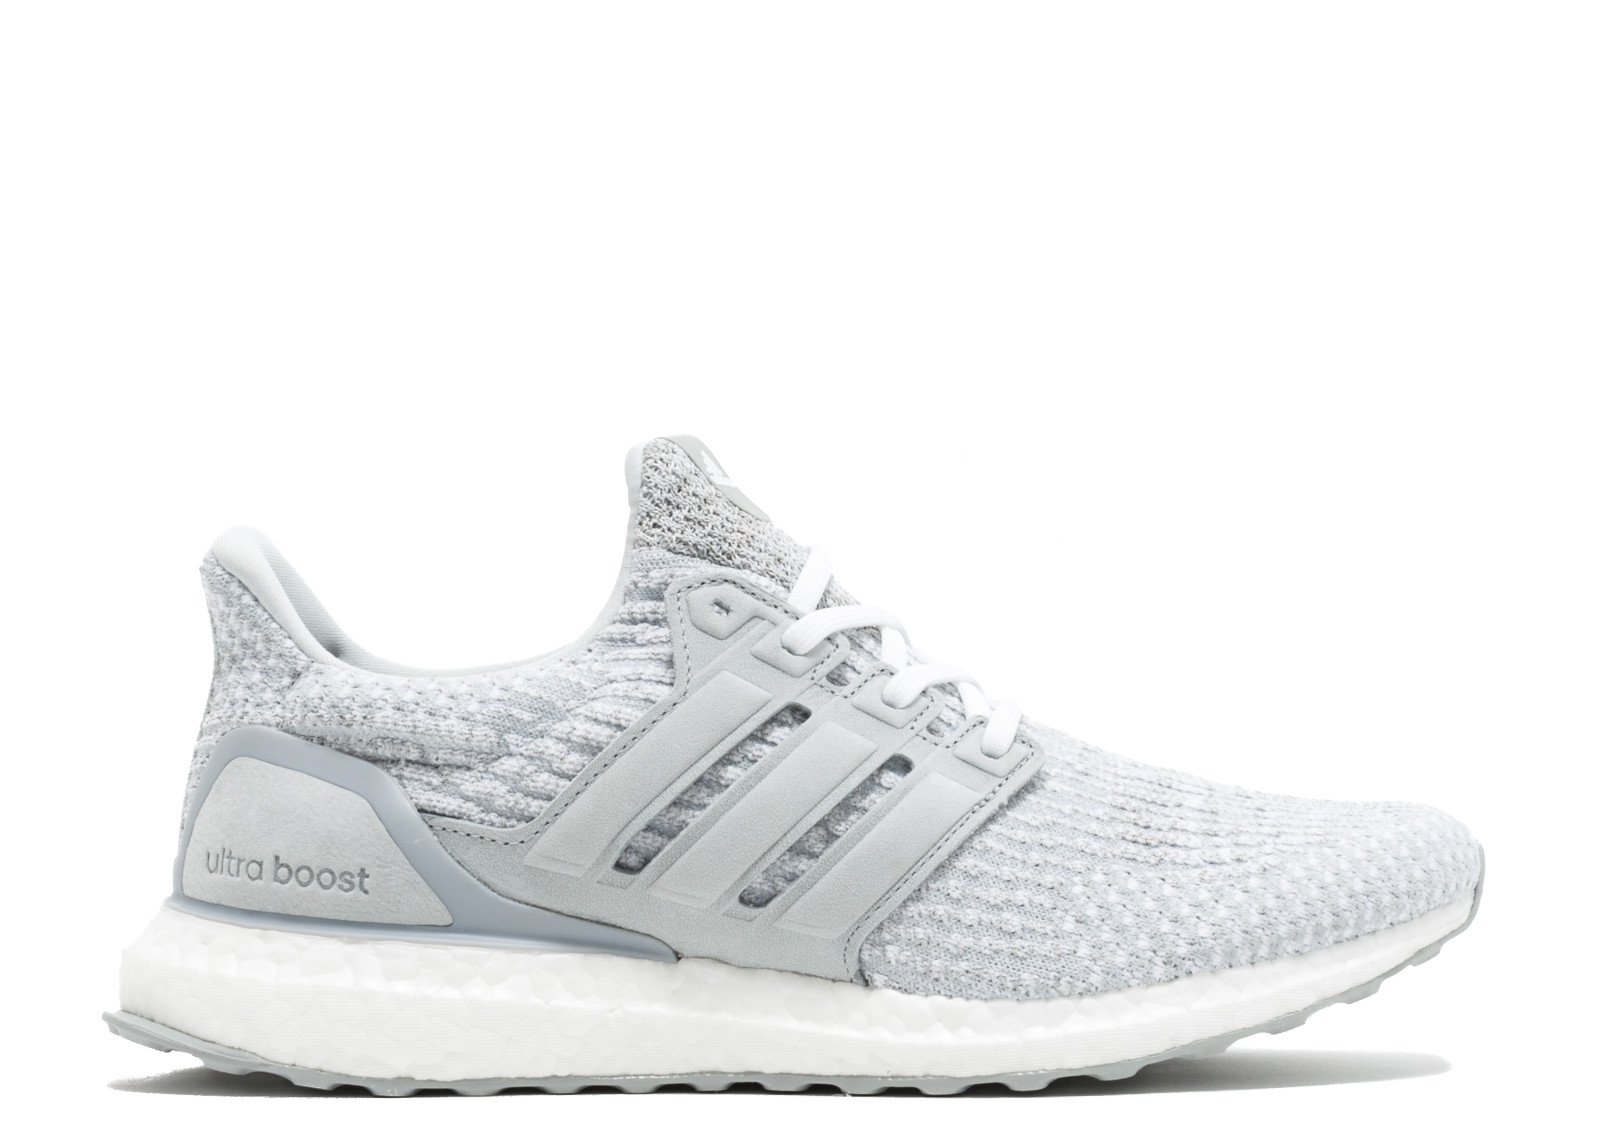 premium selection 5c96c 089f5 adidas Ultraboost Reigning Champ - BW1116